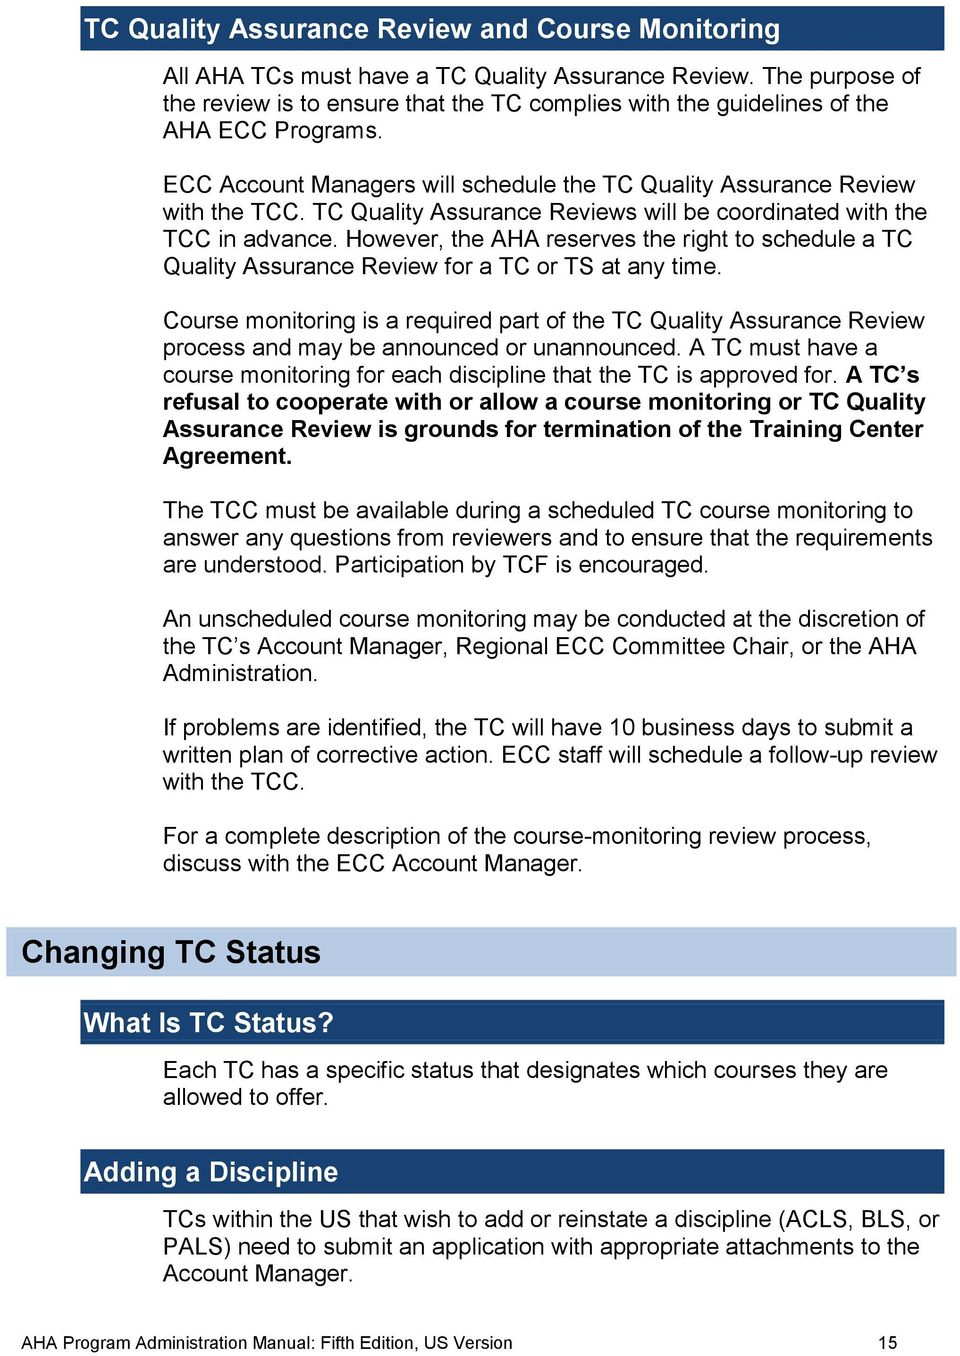 TC Quality Assurance Reviews will be coordinated with the TCC in advance. However, the AHA reserves the right to schedule a TC Quality Assurance Review for a TC or TS at any time.